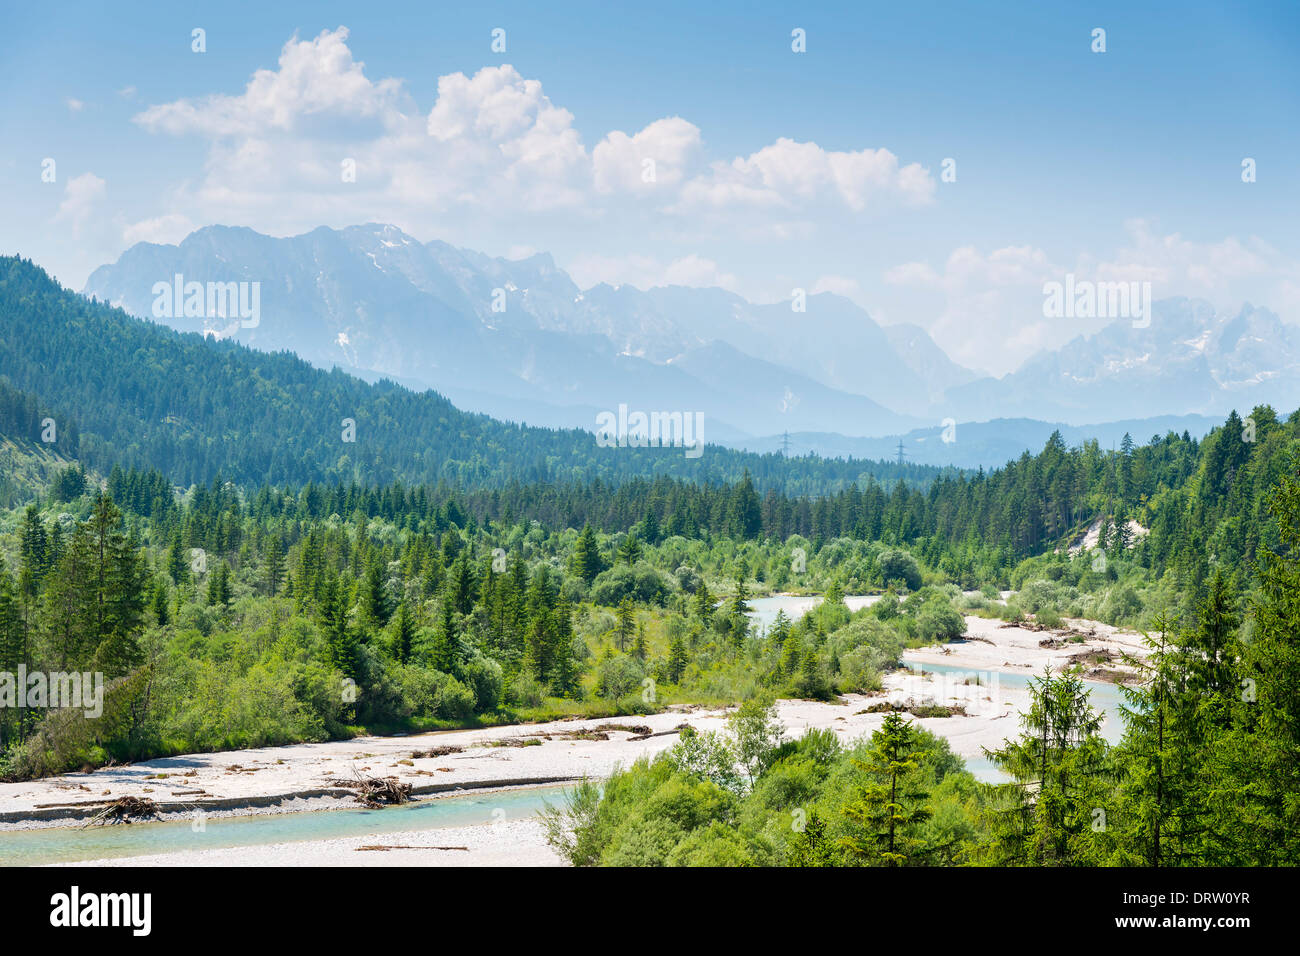 alps and river named Isar in the alps at Karwendel - Stock Image